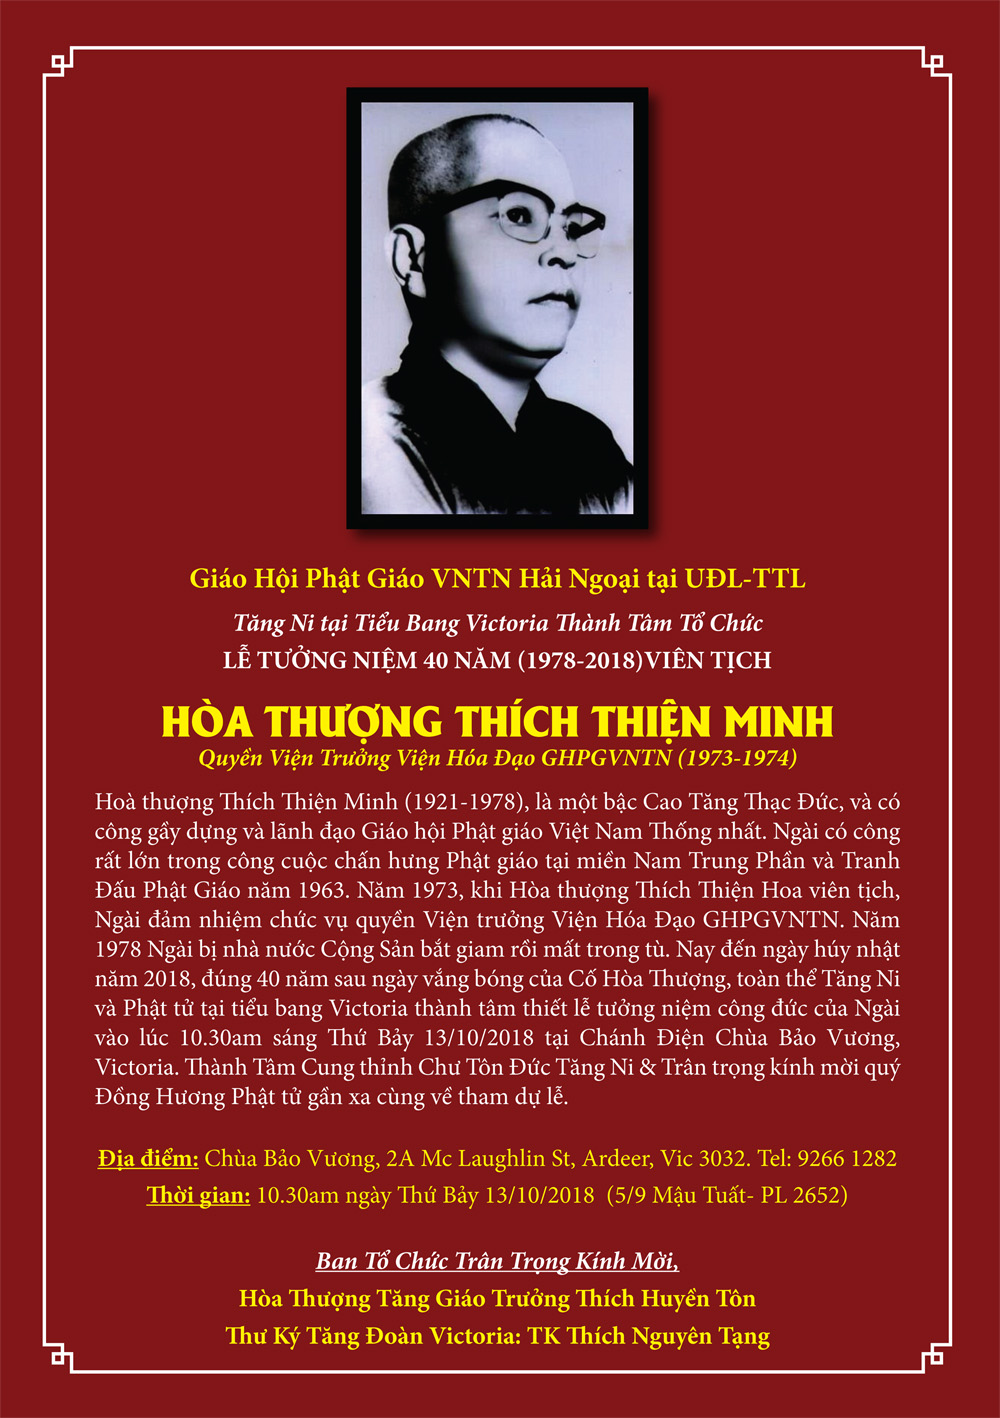 Le Tuong Niem HT Thich Thien Minh